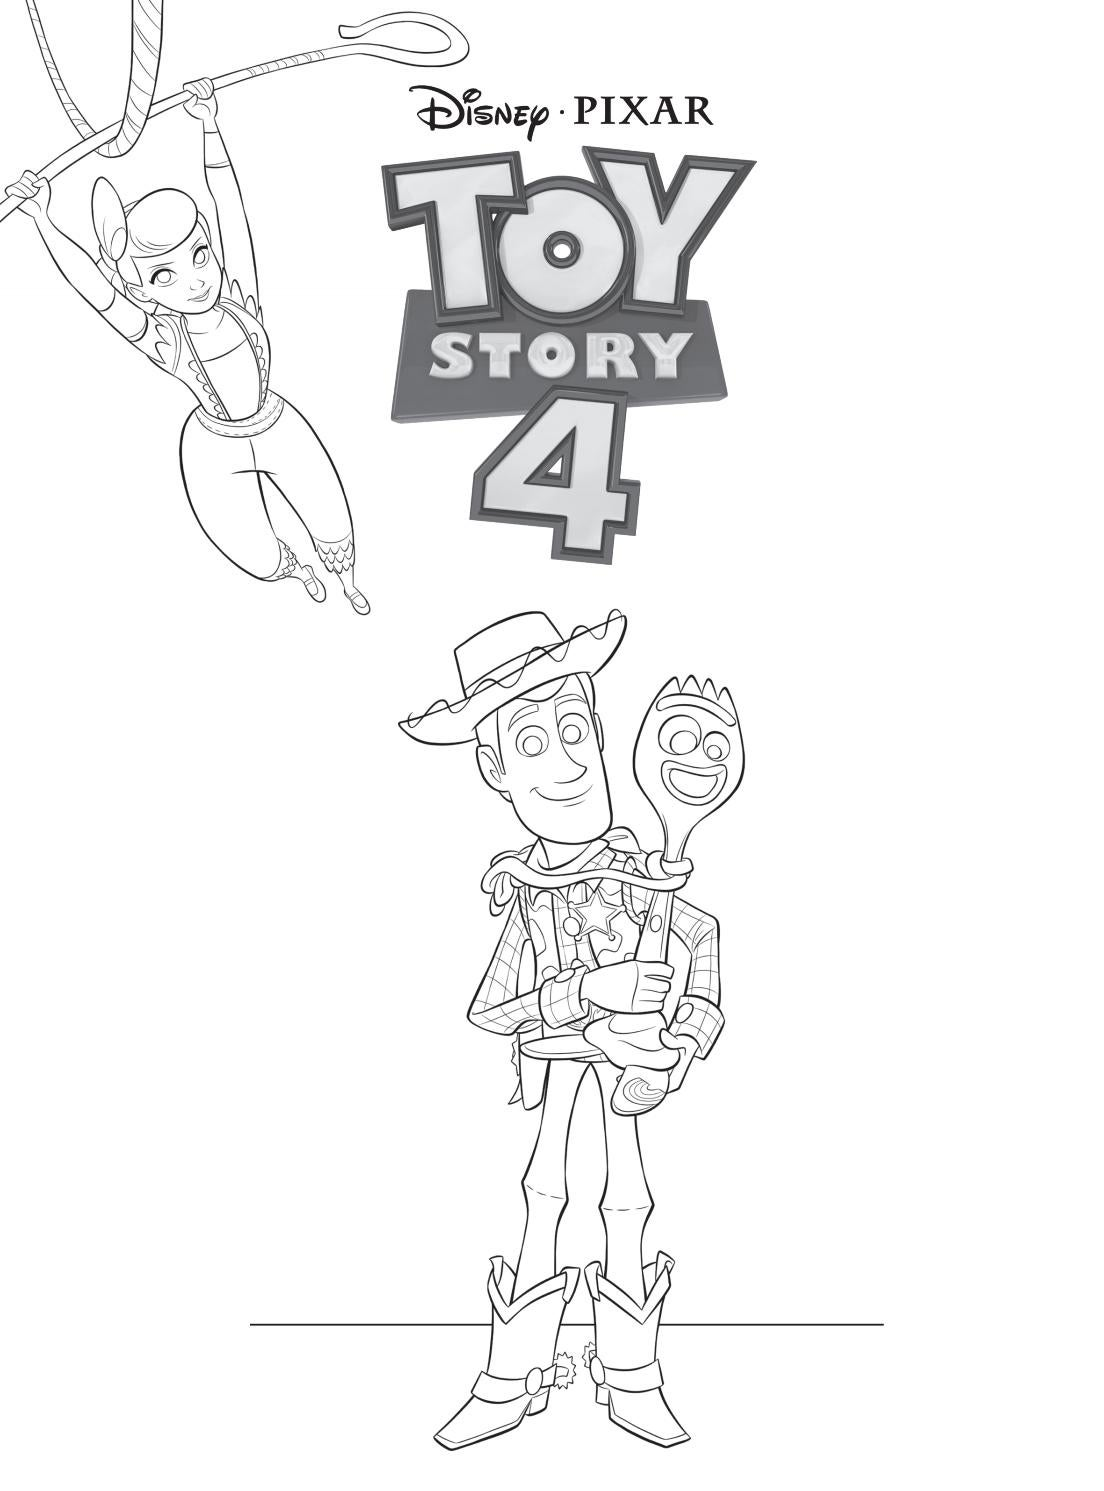 Colorir E Aprender Toy Story 4 By Editora Rideel Issuu